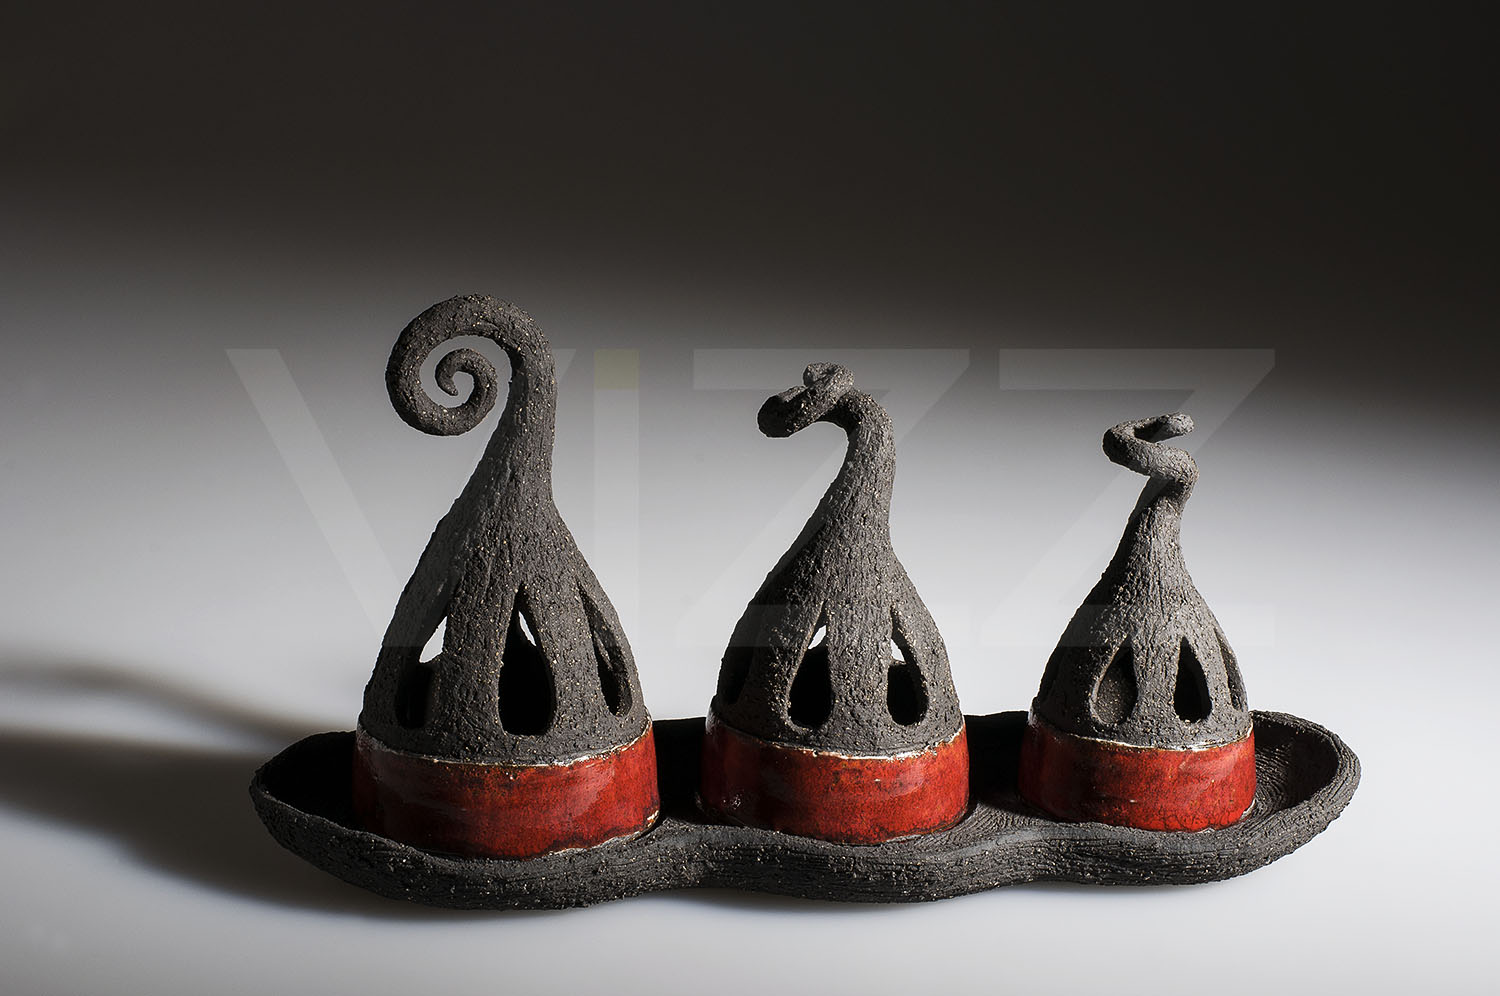 Candle Holders by Alison Hanvey. Definitely an unusual and sculptural piece.